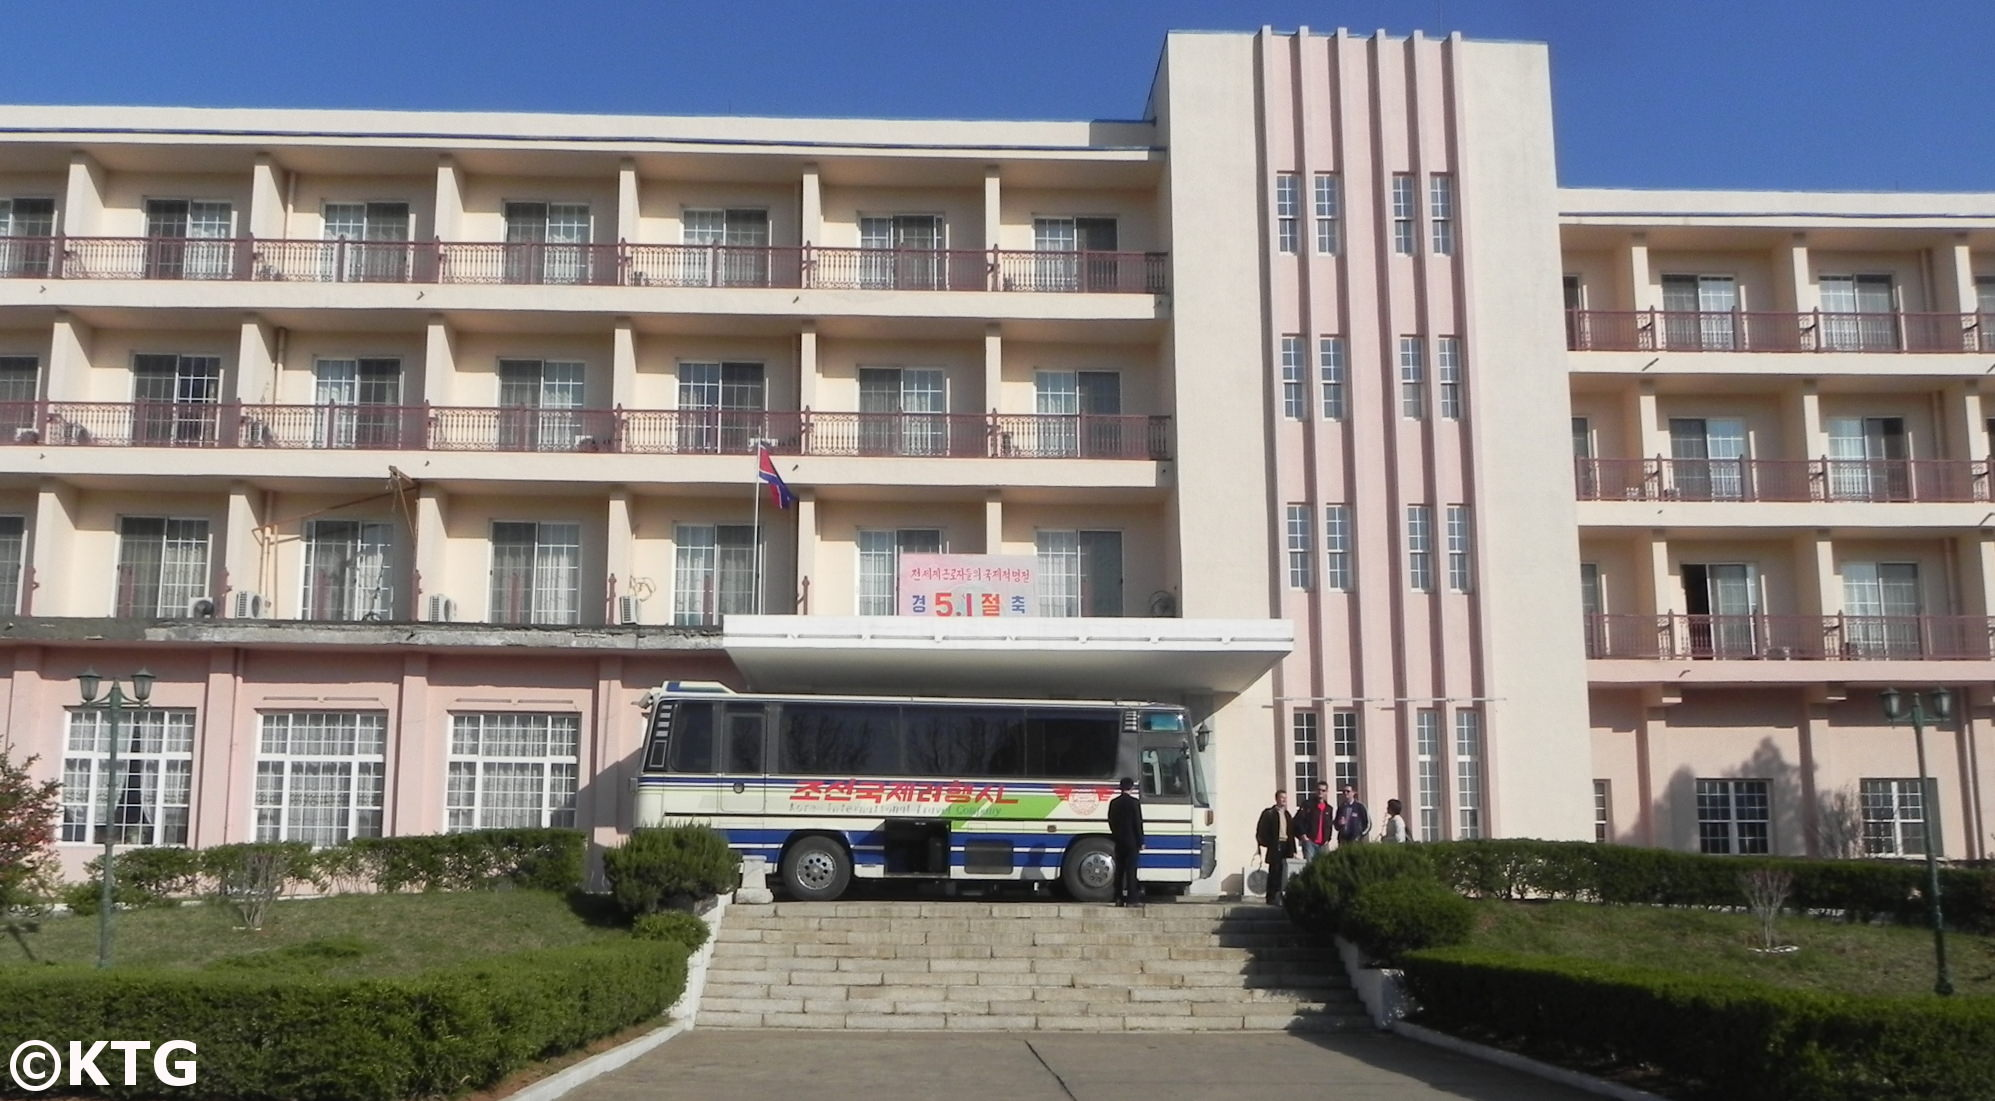 3.8 Hotel in Sariwon, May Day, North Korea (DPRK). Picture taken by KTG Tours